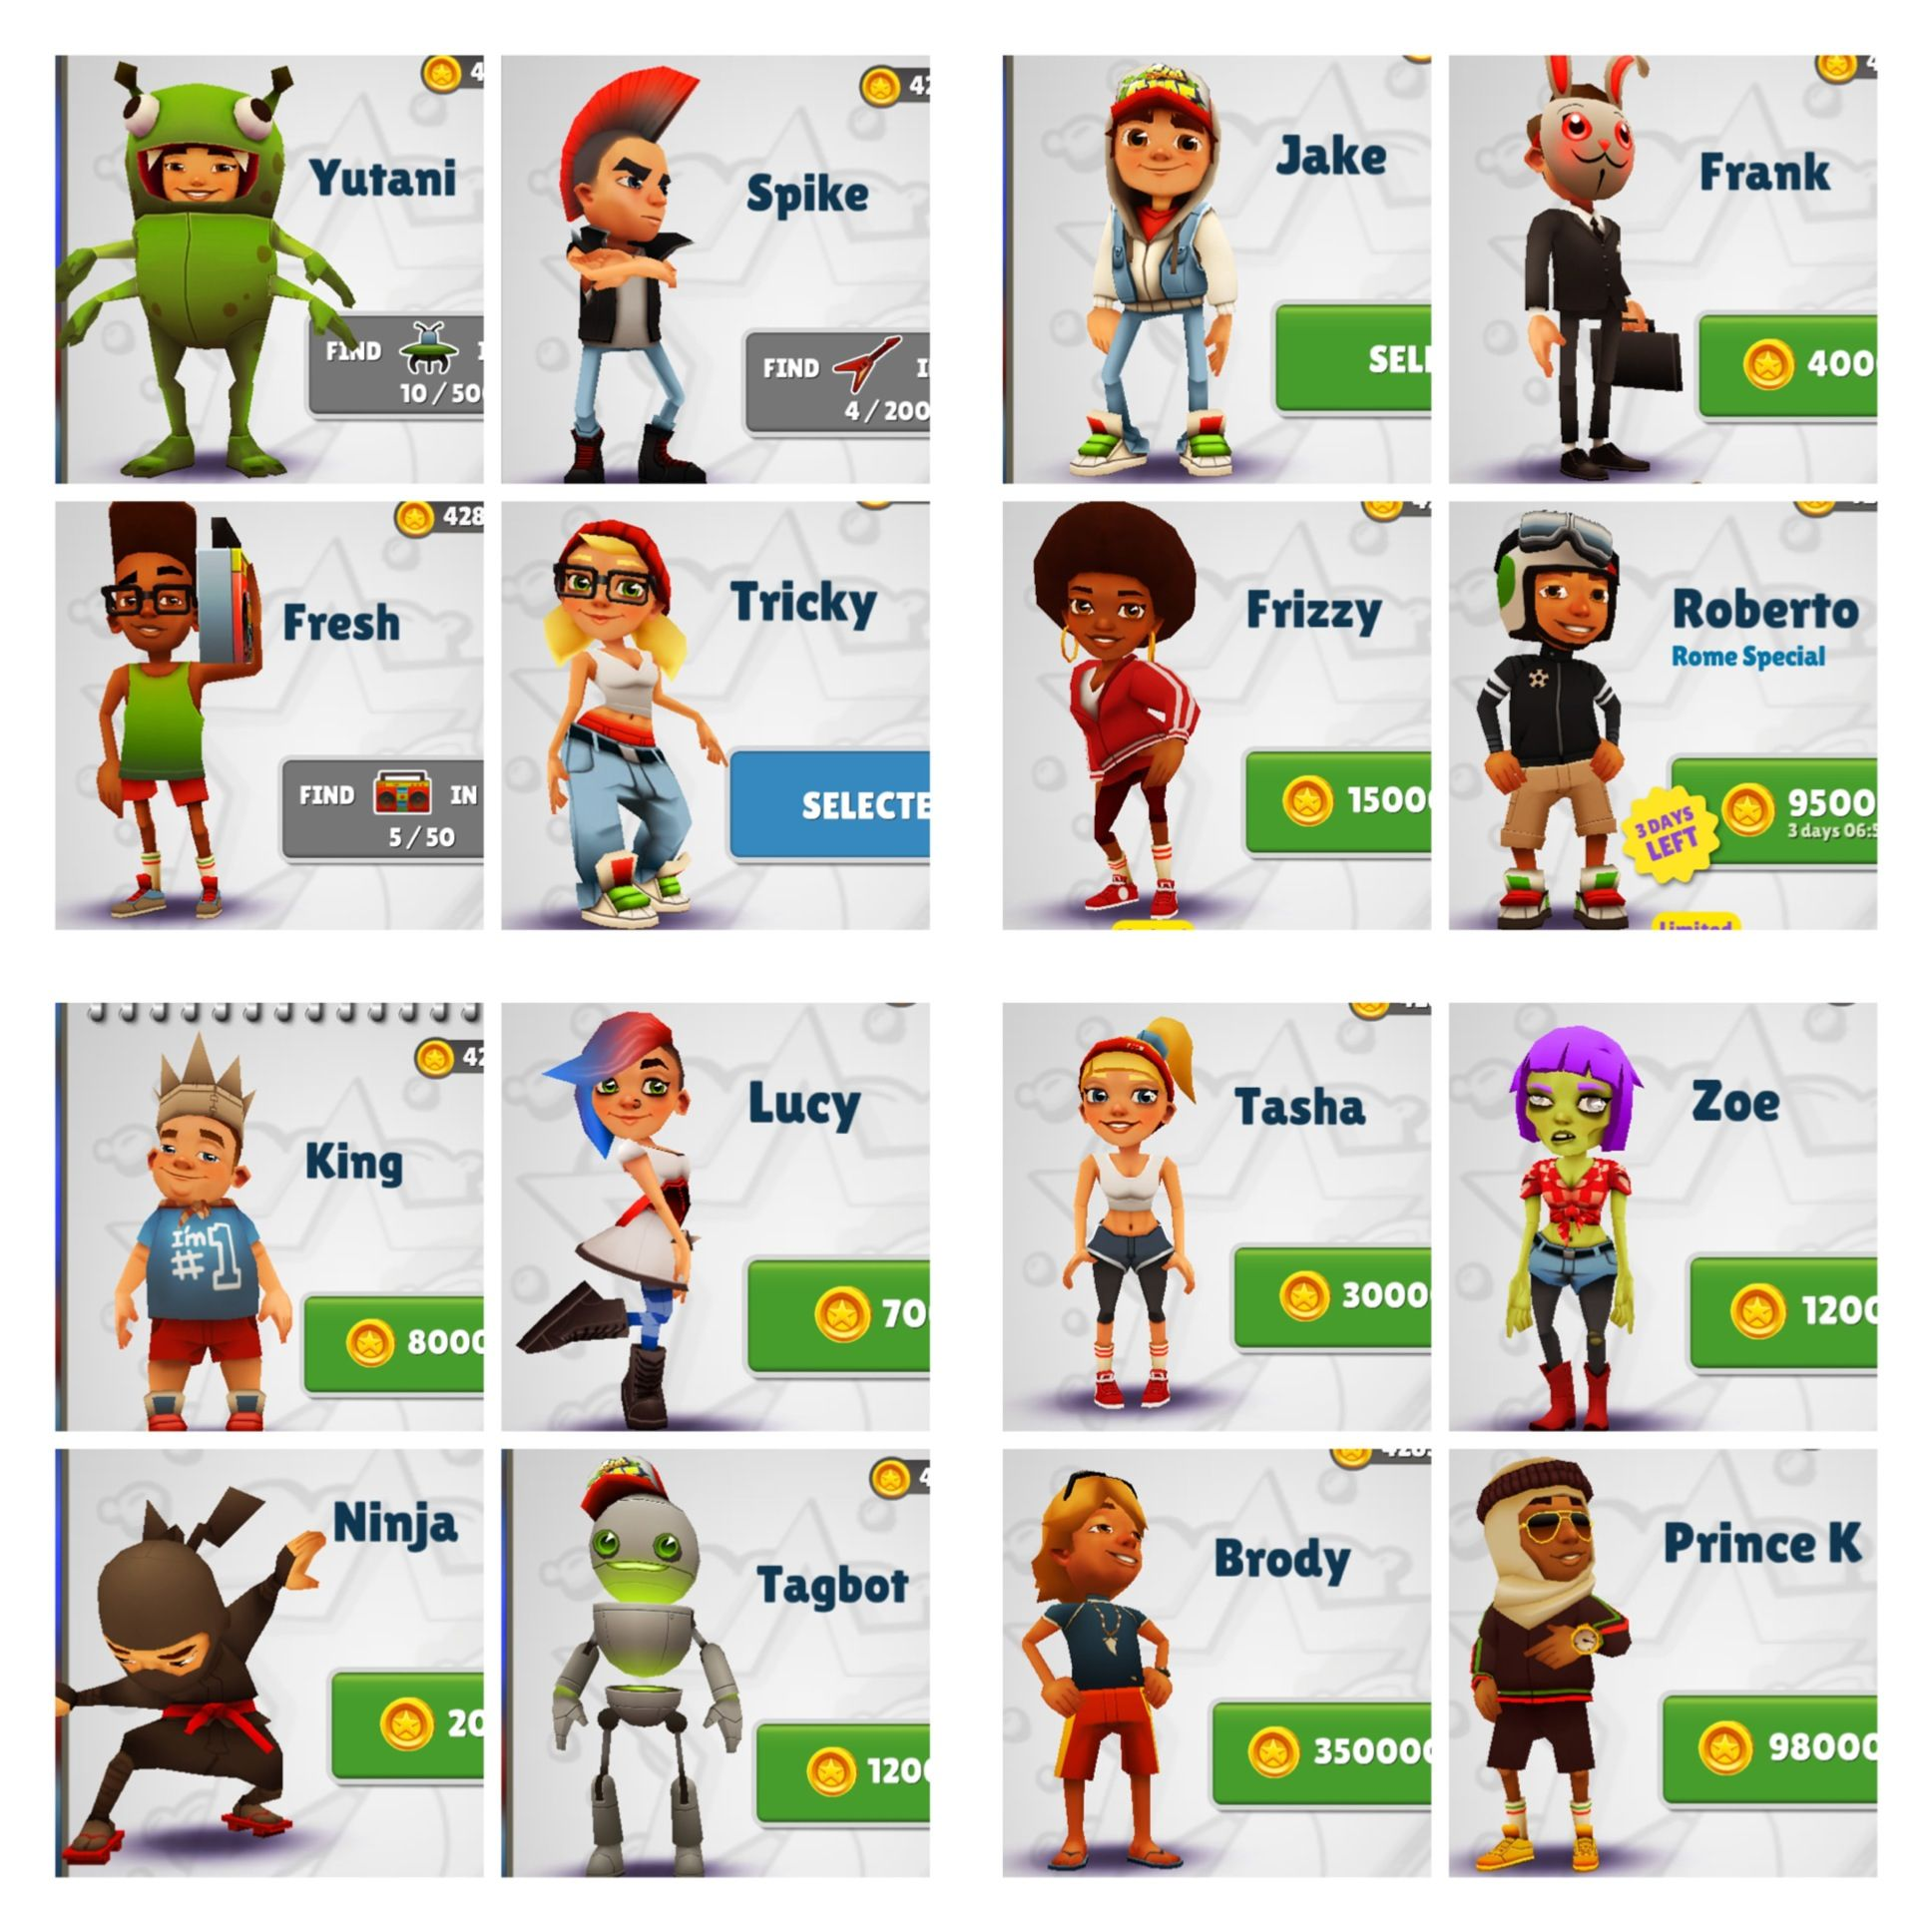 How To Get All The Characters In Subway Surfers